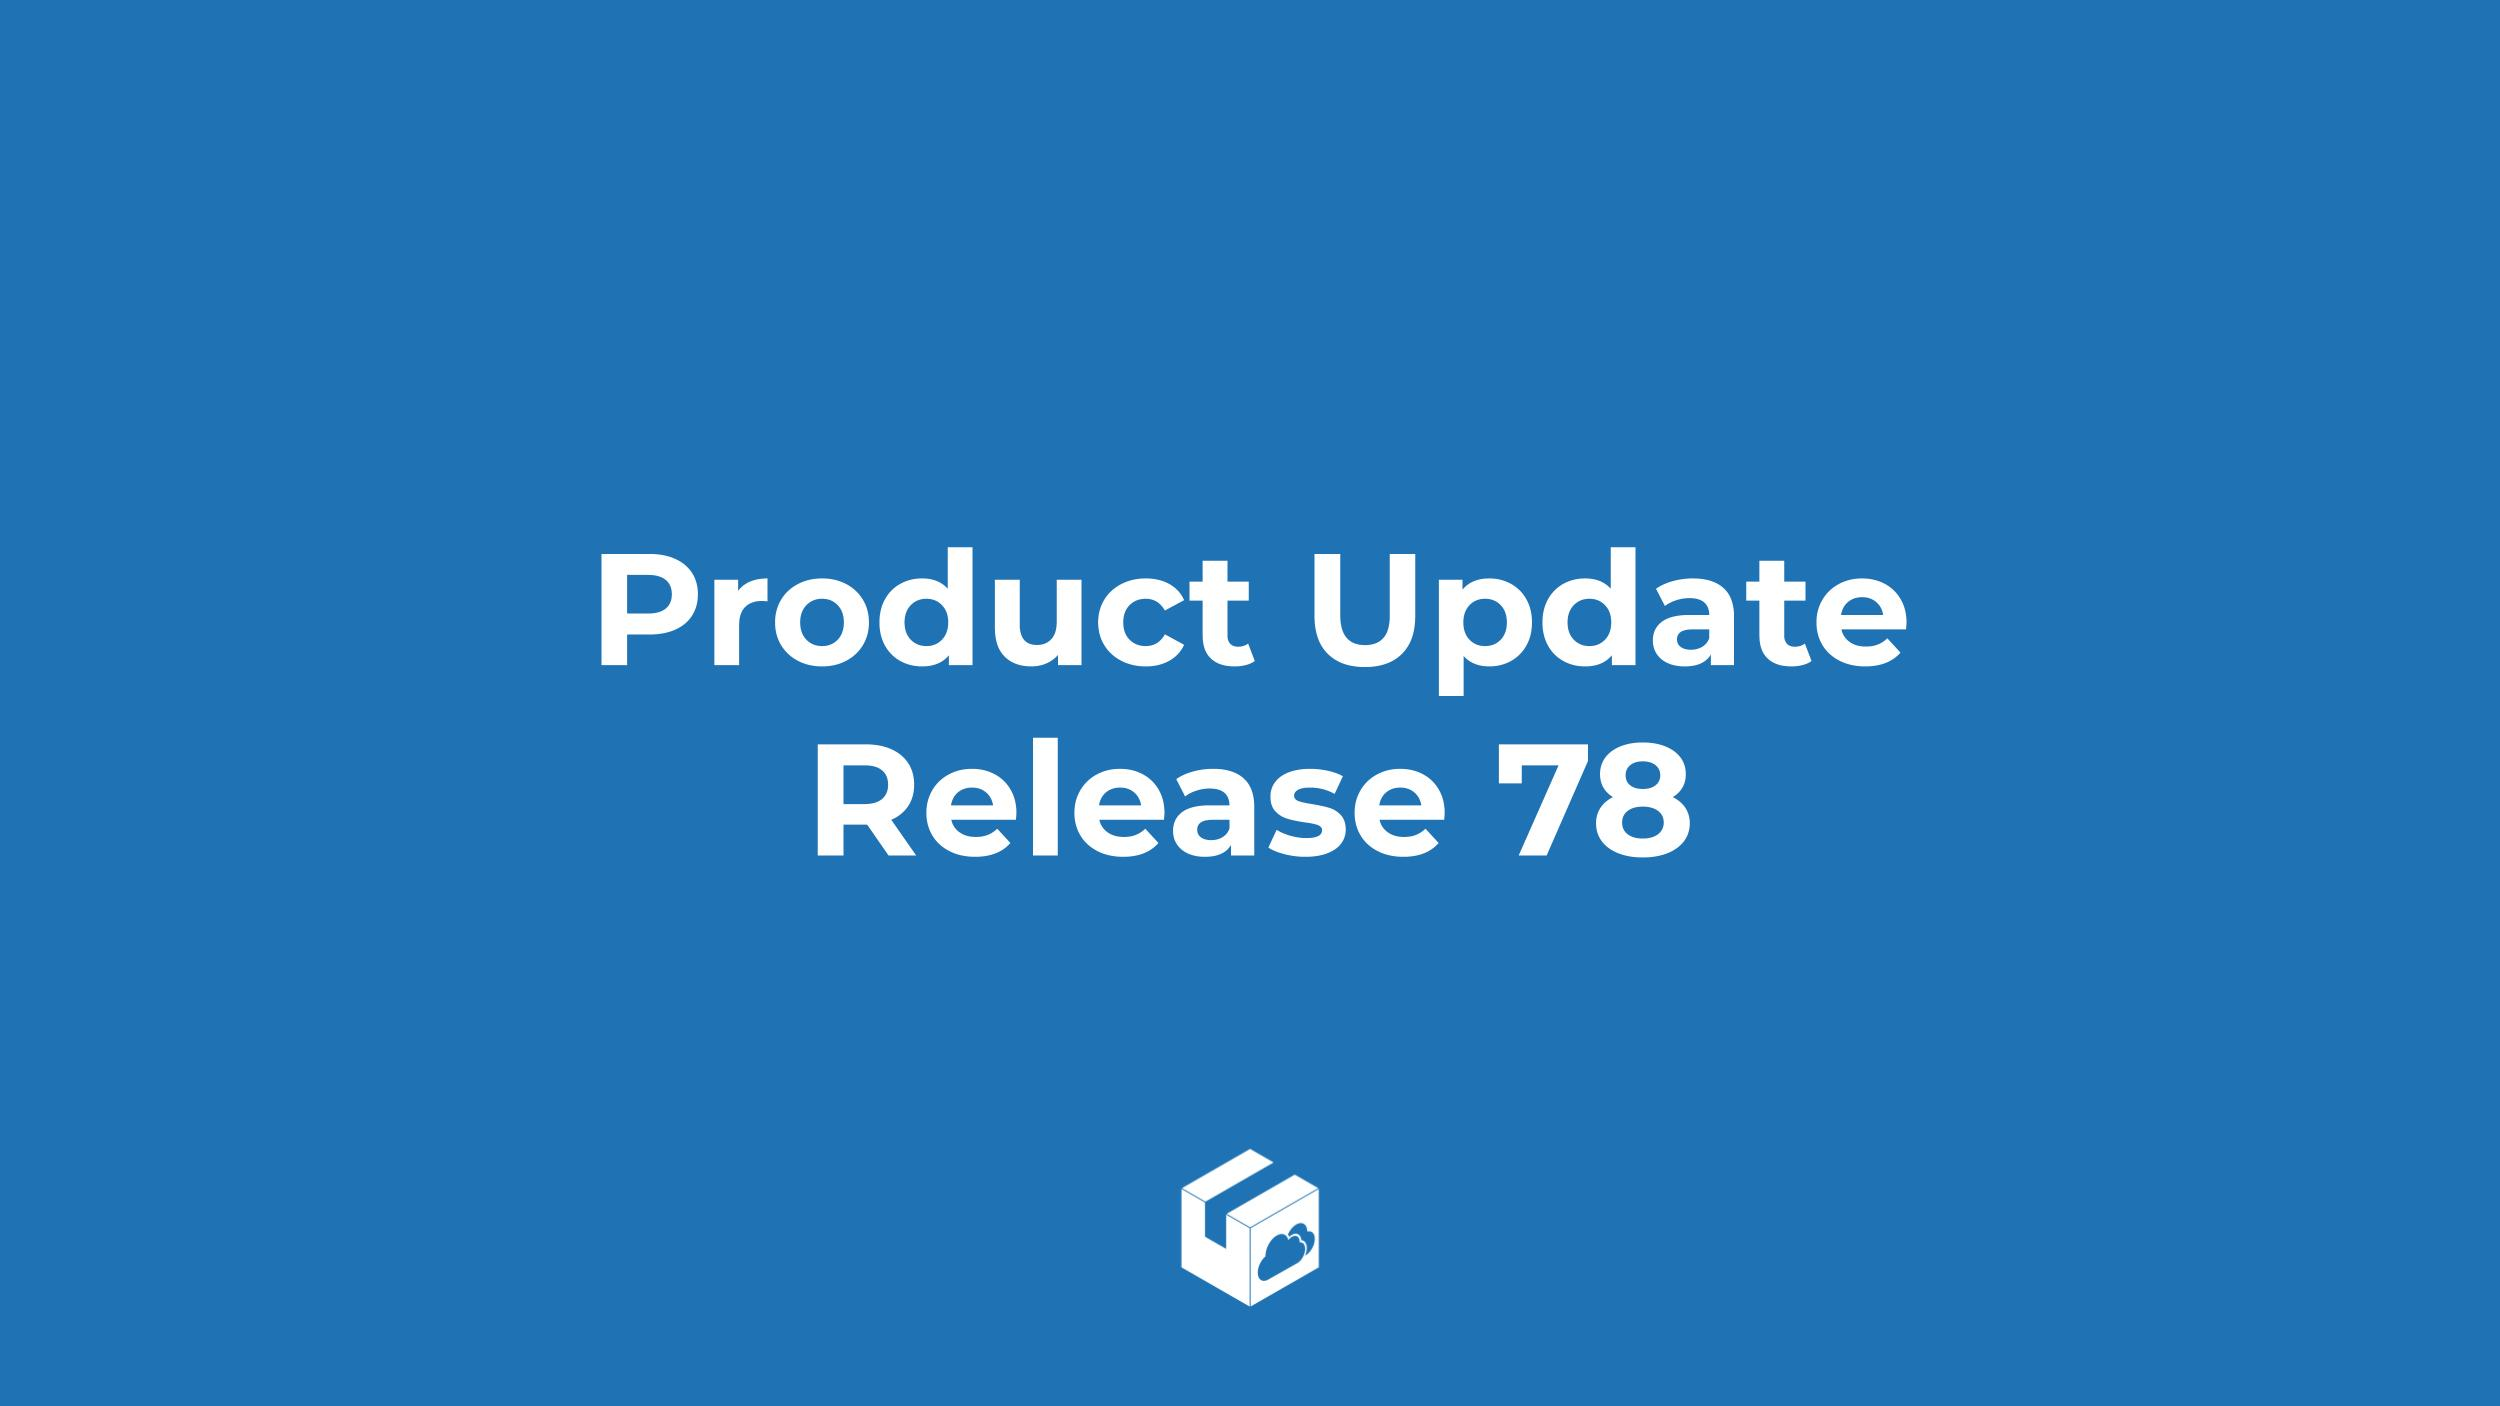 Release 78